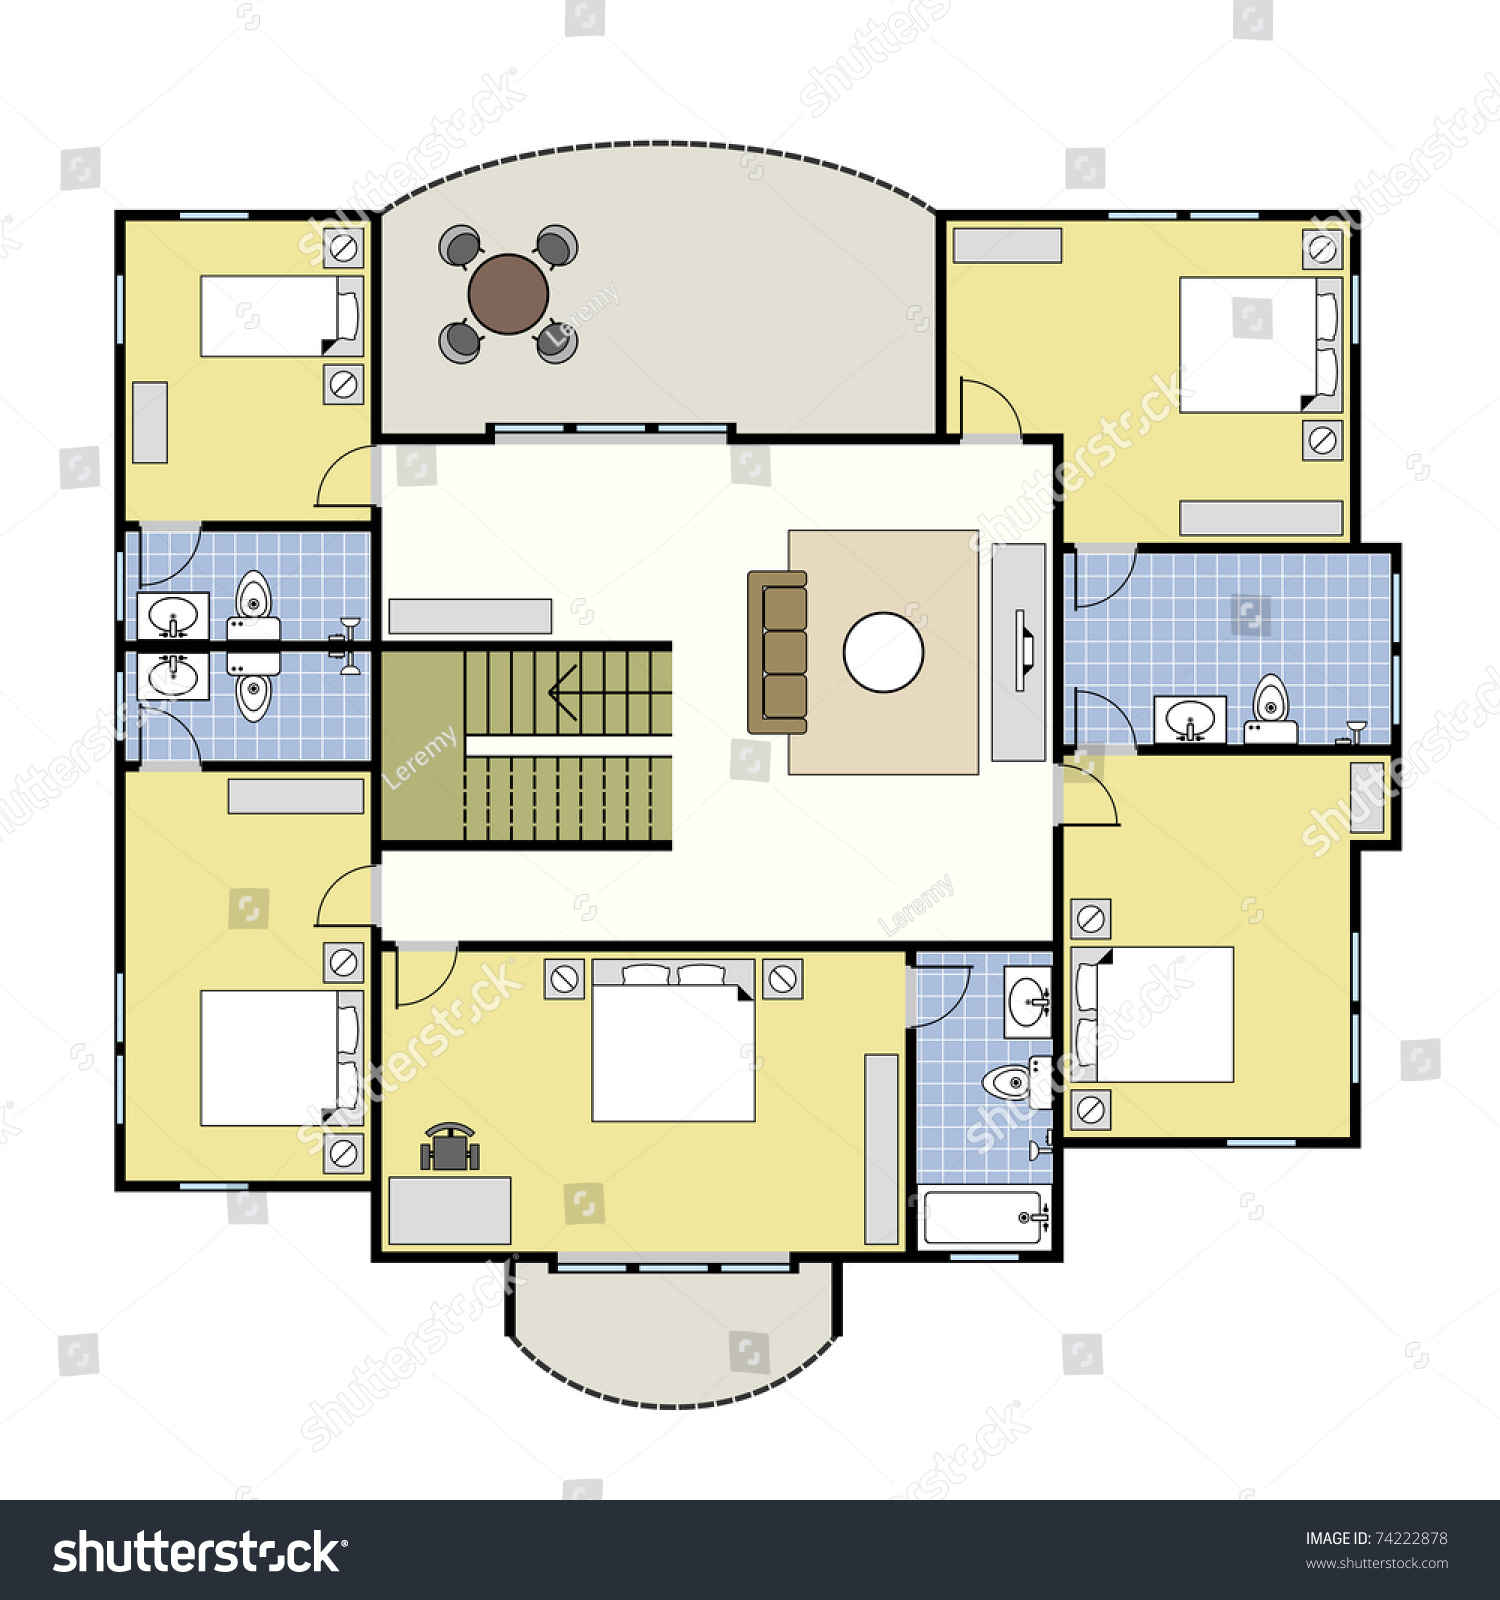 First second floor plan floorplan house home building Building blueprint maker